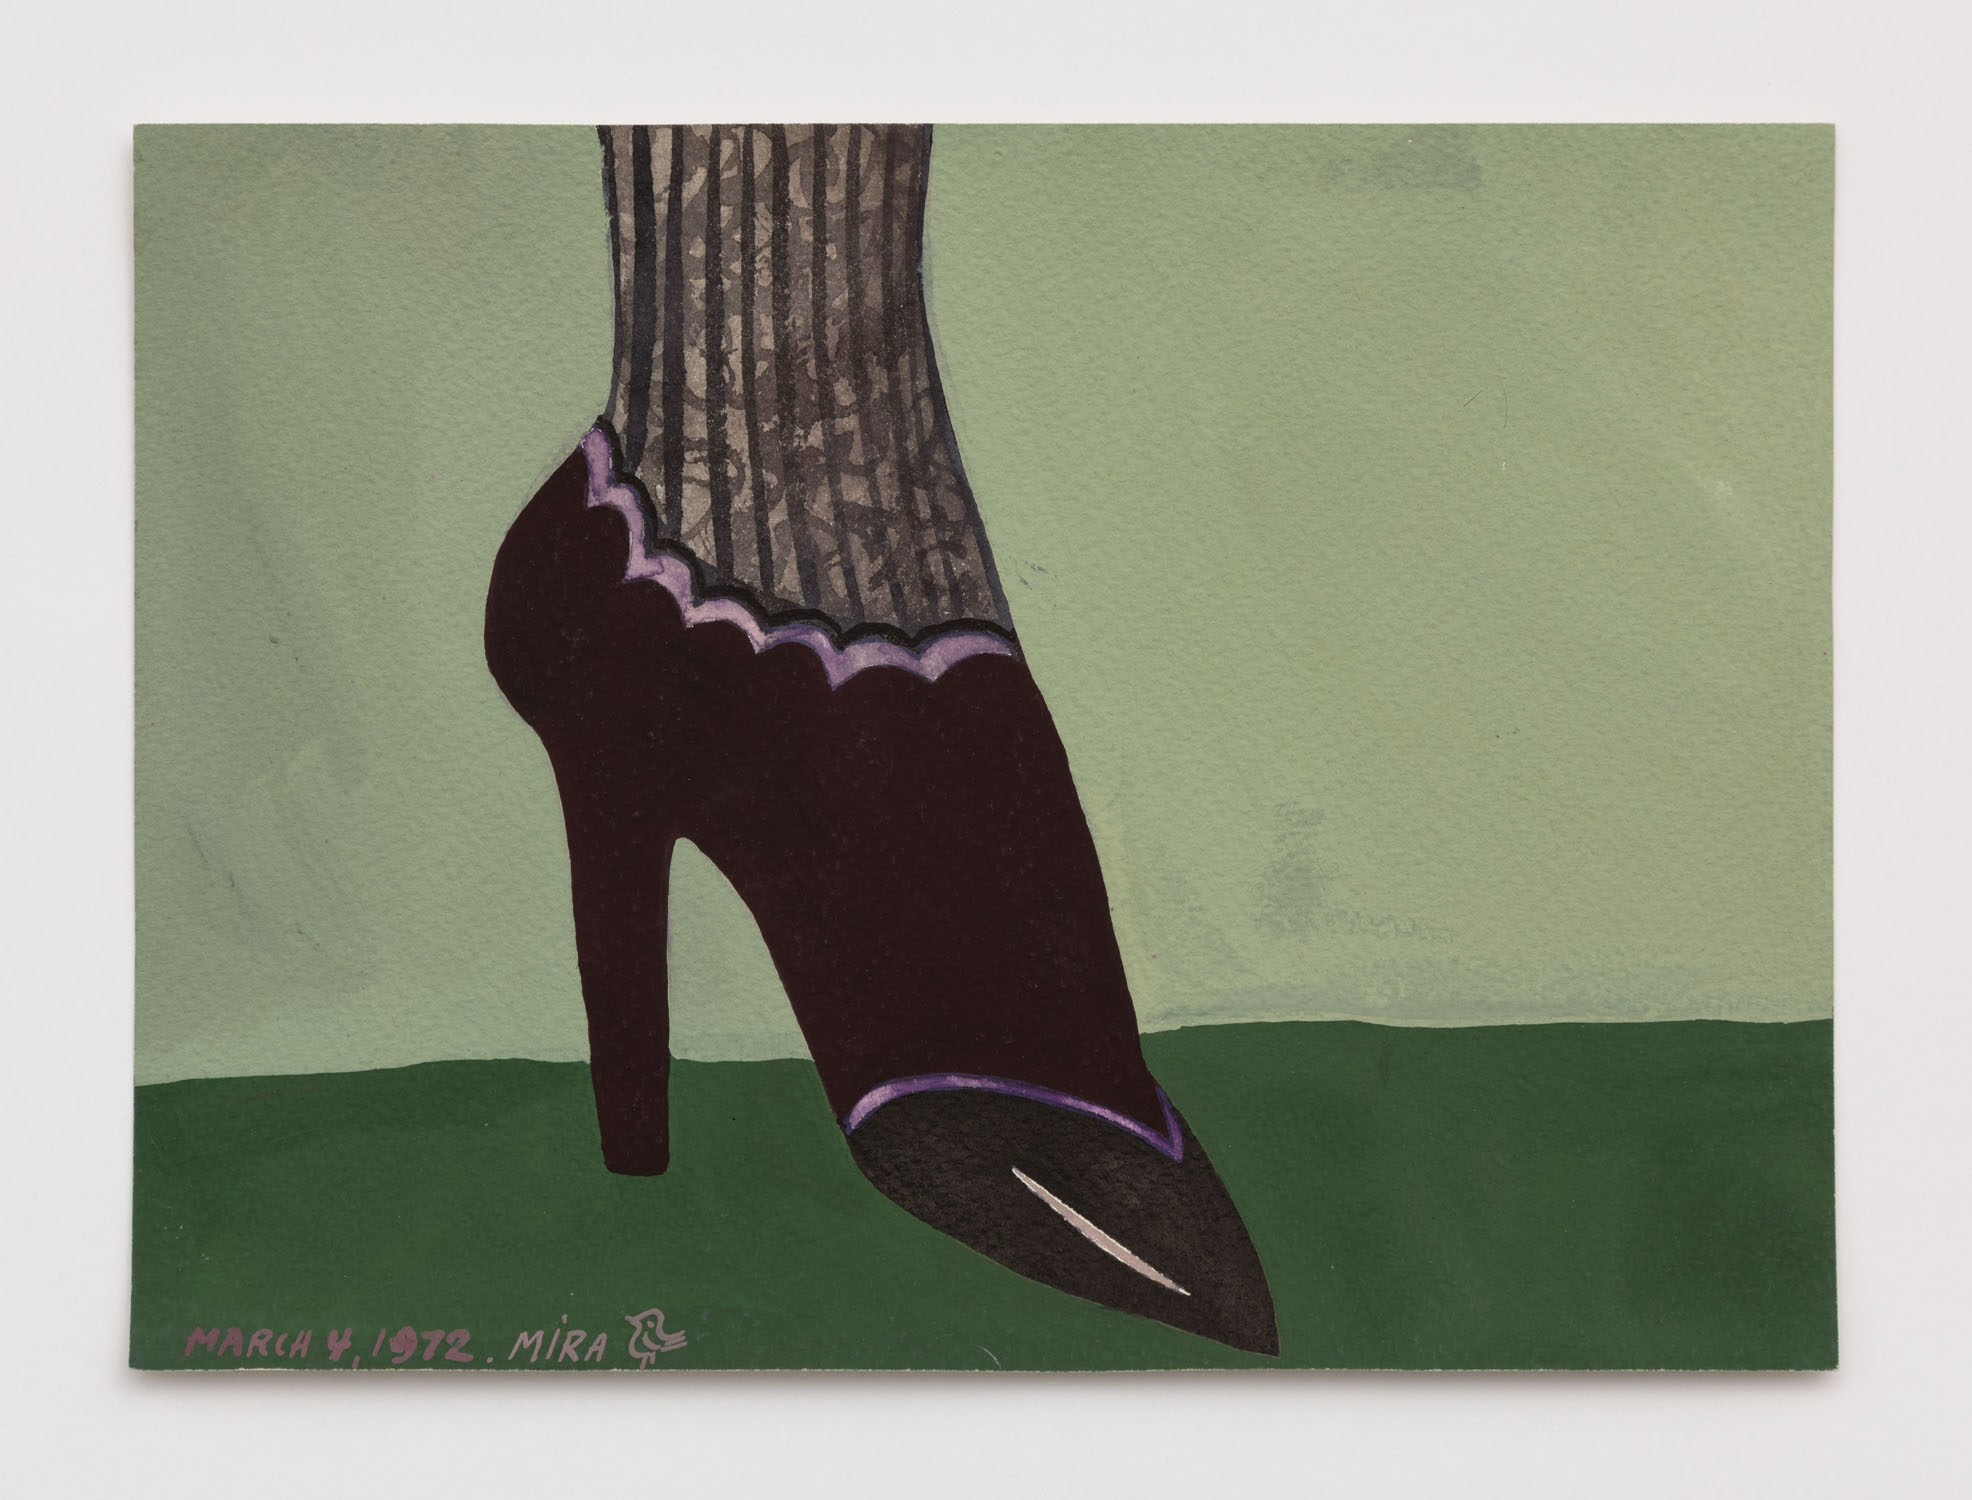 Mira Schor   Shoe , March 4, 1972  Gouache on paper  7 x 9.5 inches